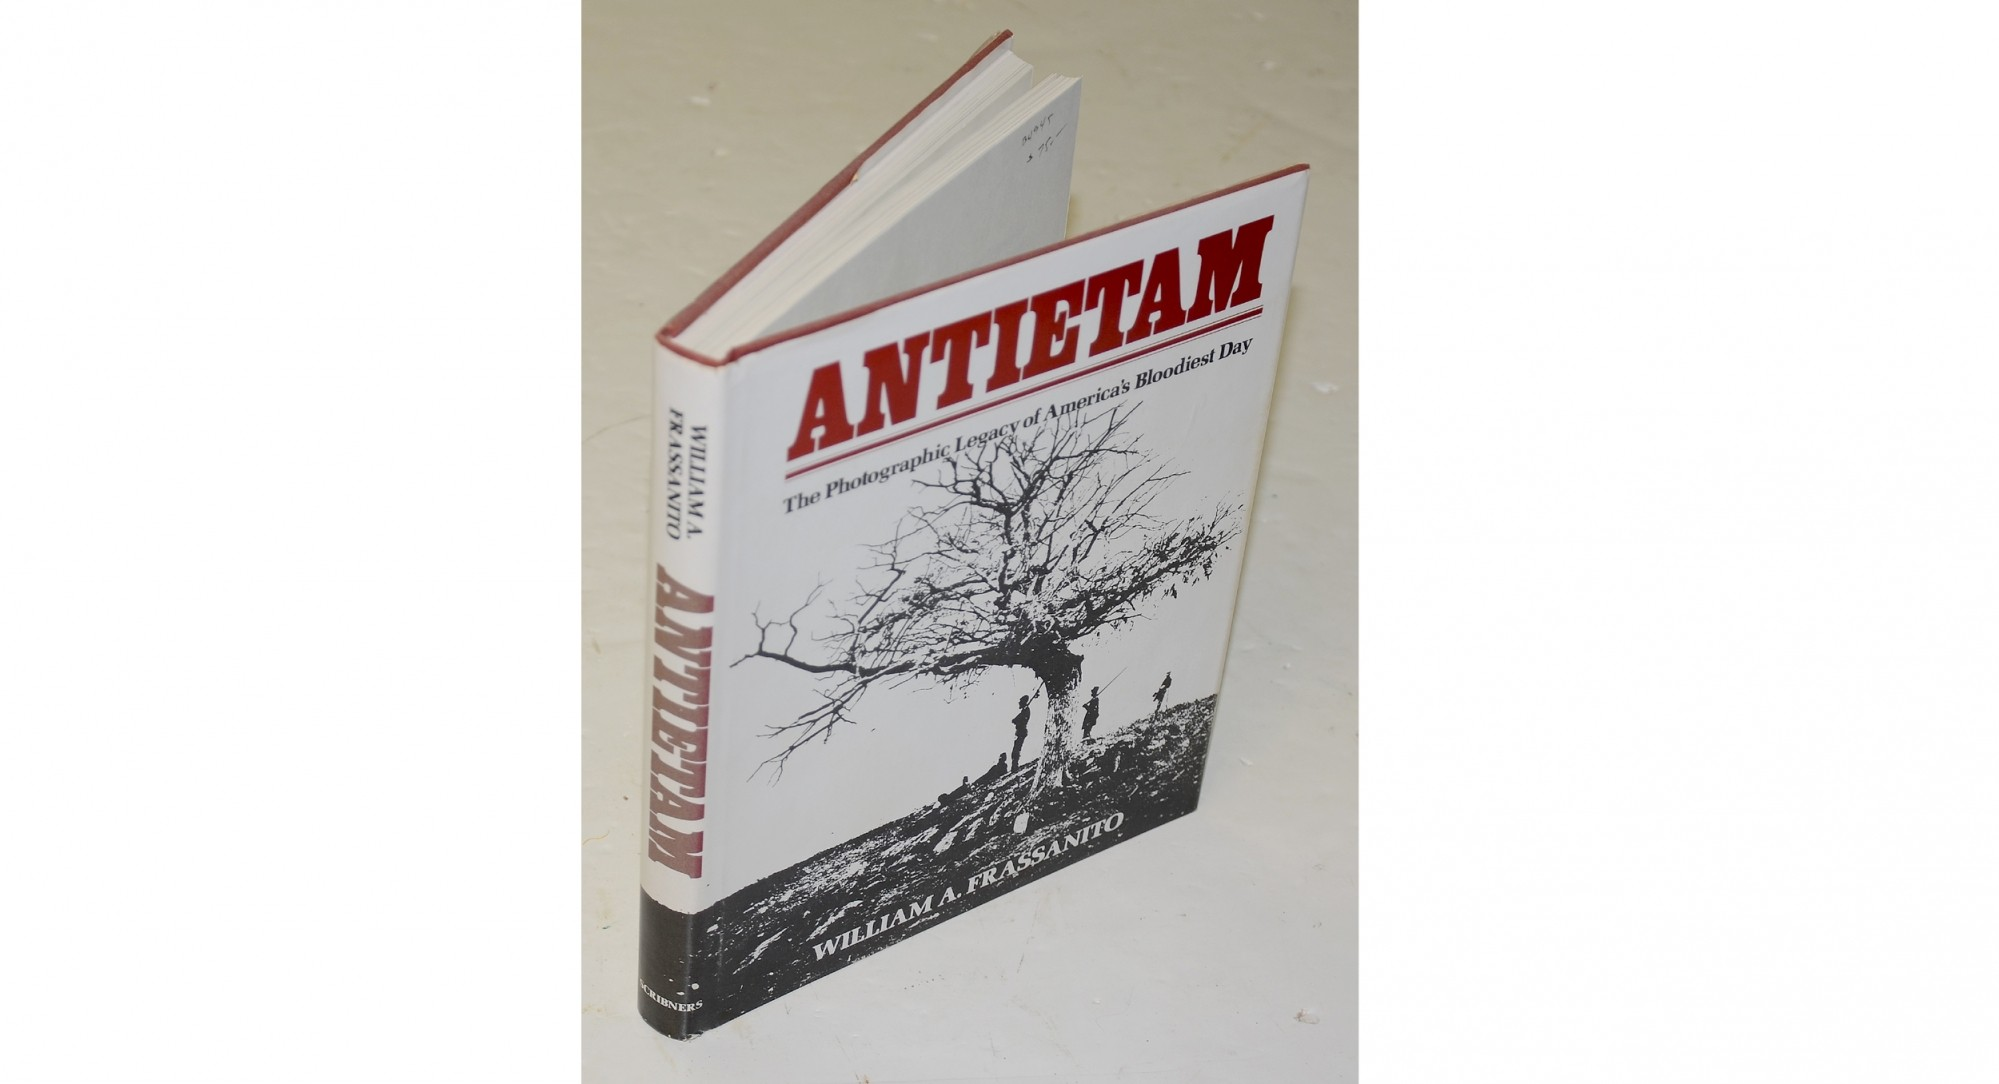 <I>ANTIETAM – THE PHOTOGRAPHIC LEGACY OF AMERICA'S BLOODIEST DAY</I> BY WILLIAM FRASSANITO